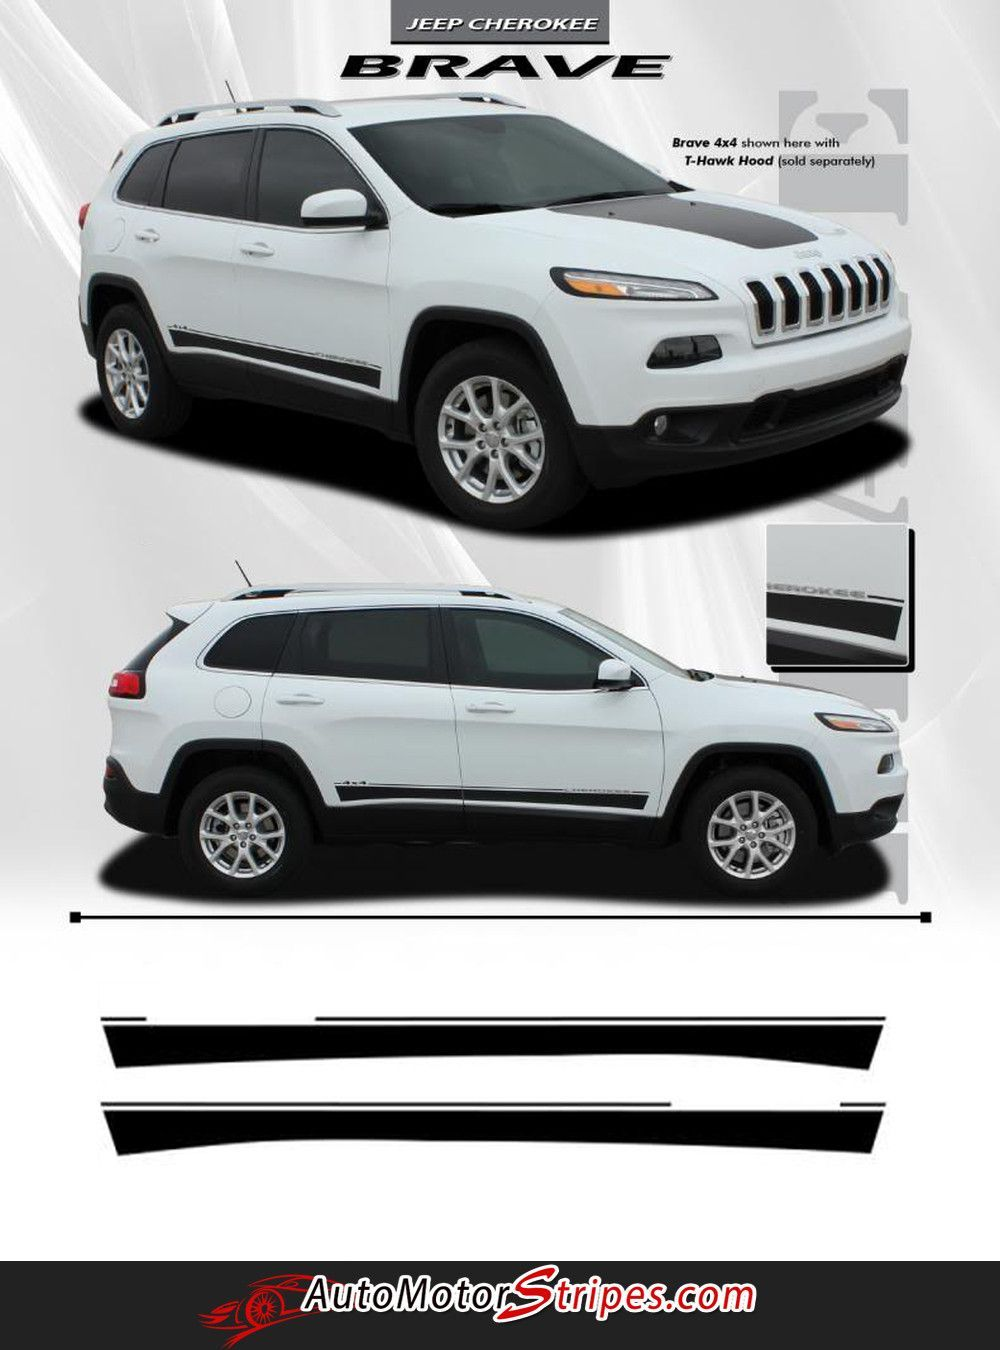 2014 2016 Jeep Cherokee Brave Lower Rocker Panel Accent Vinyl Decal Graphic 3m Stripes Jeep Cherokee Classic Jeeps Jeep